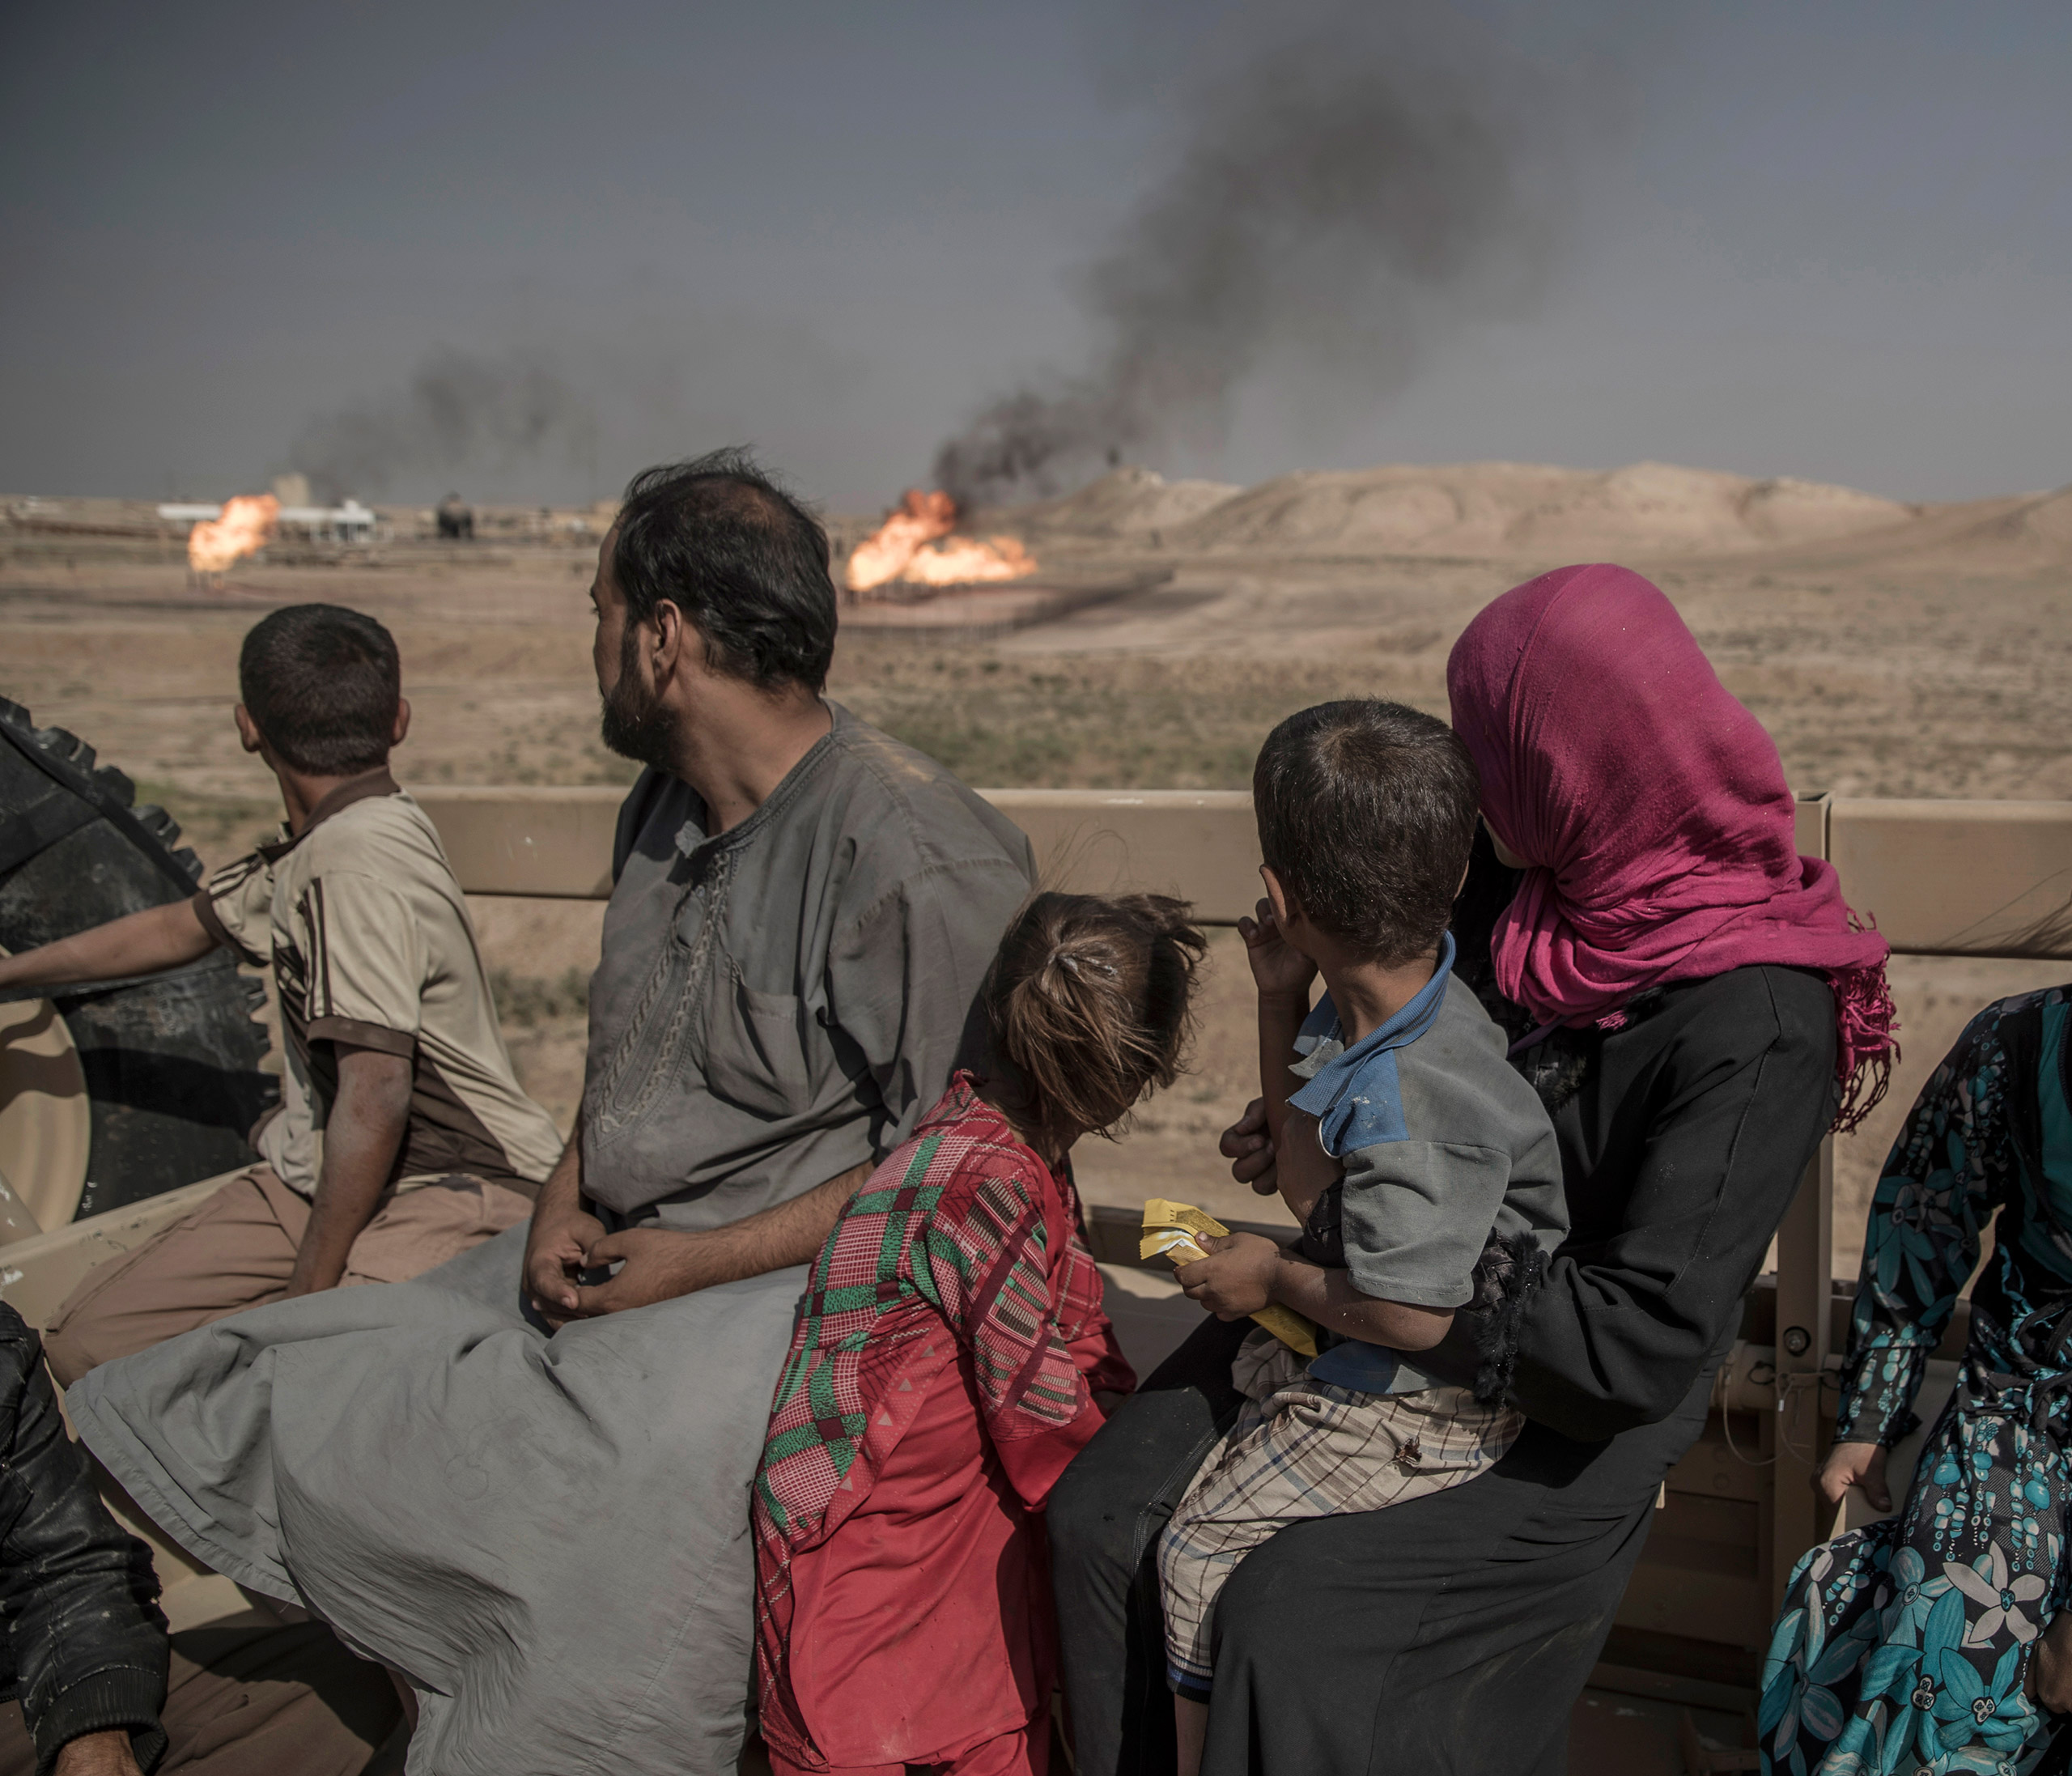 In the mountains outside Mosul, a group of 12, including men, women and children who escaped from an IS-controlled village, have sought refuge with the Kurdish Peshmerga forces on the frontline in Kurdistan, Iraq, Sept. 2016